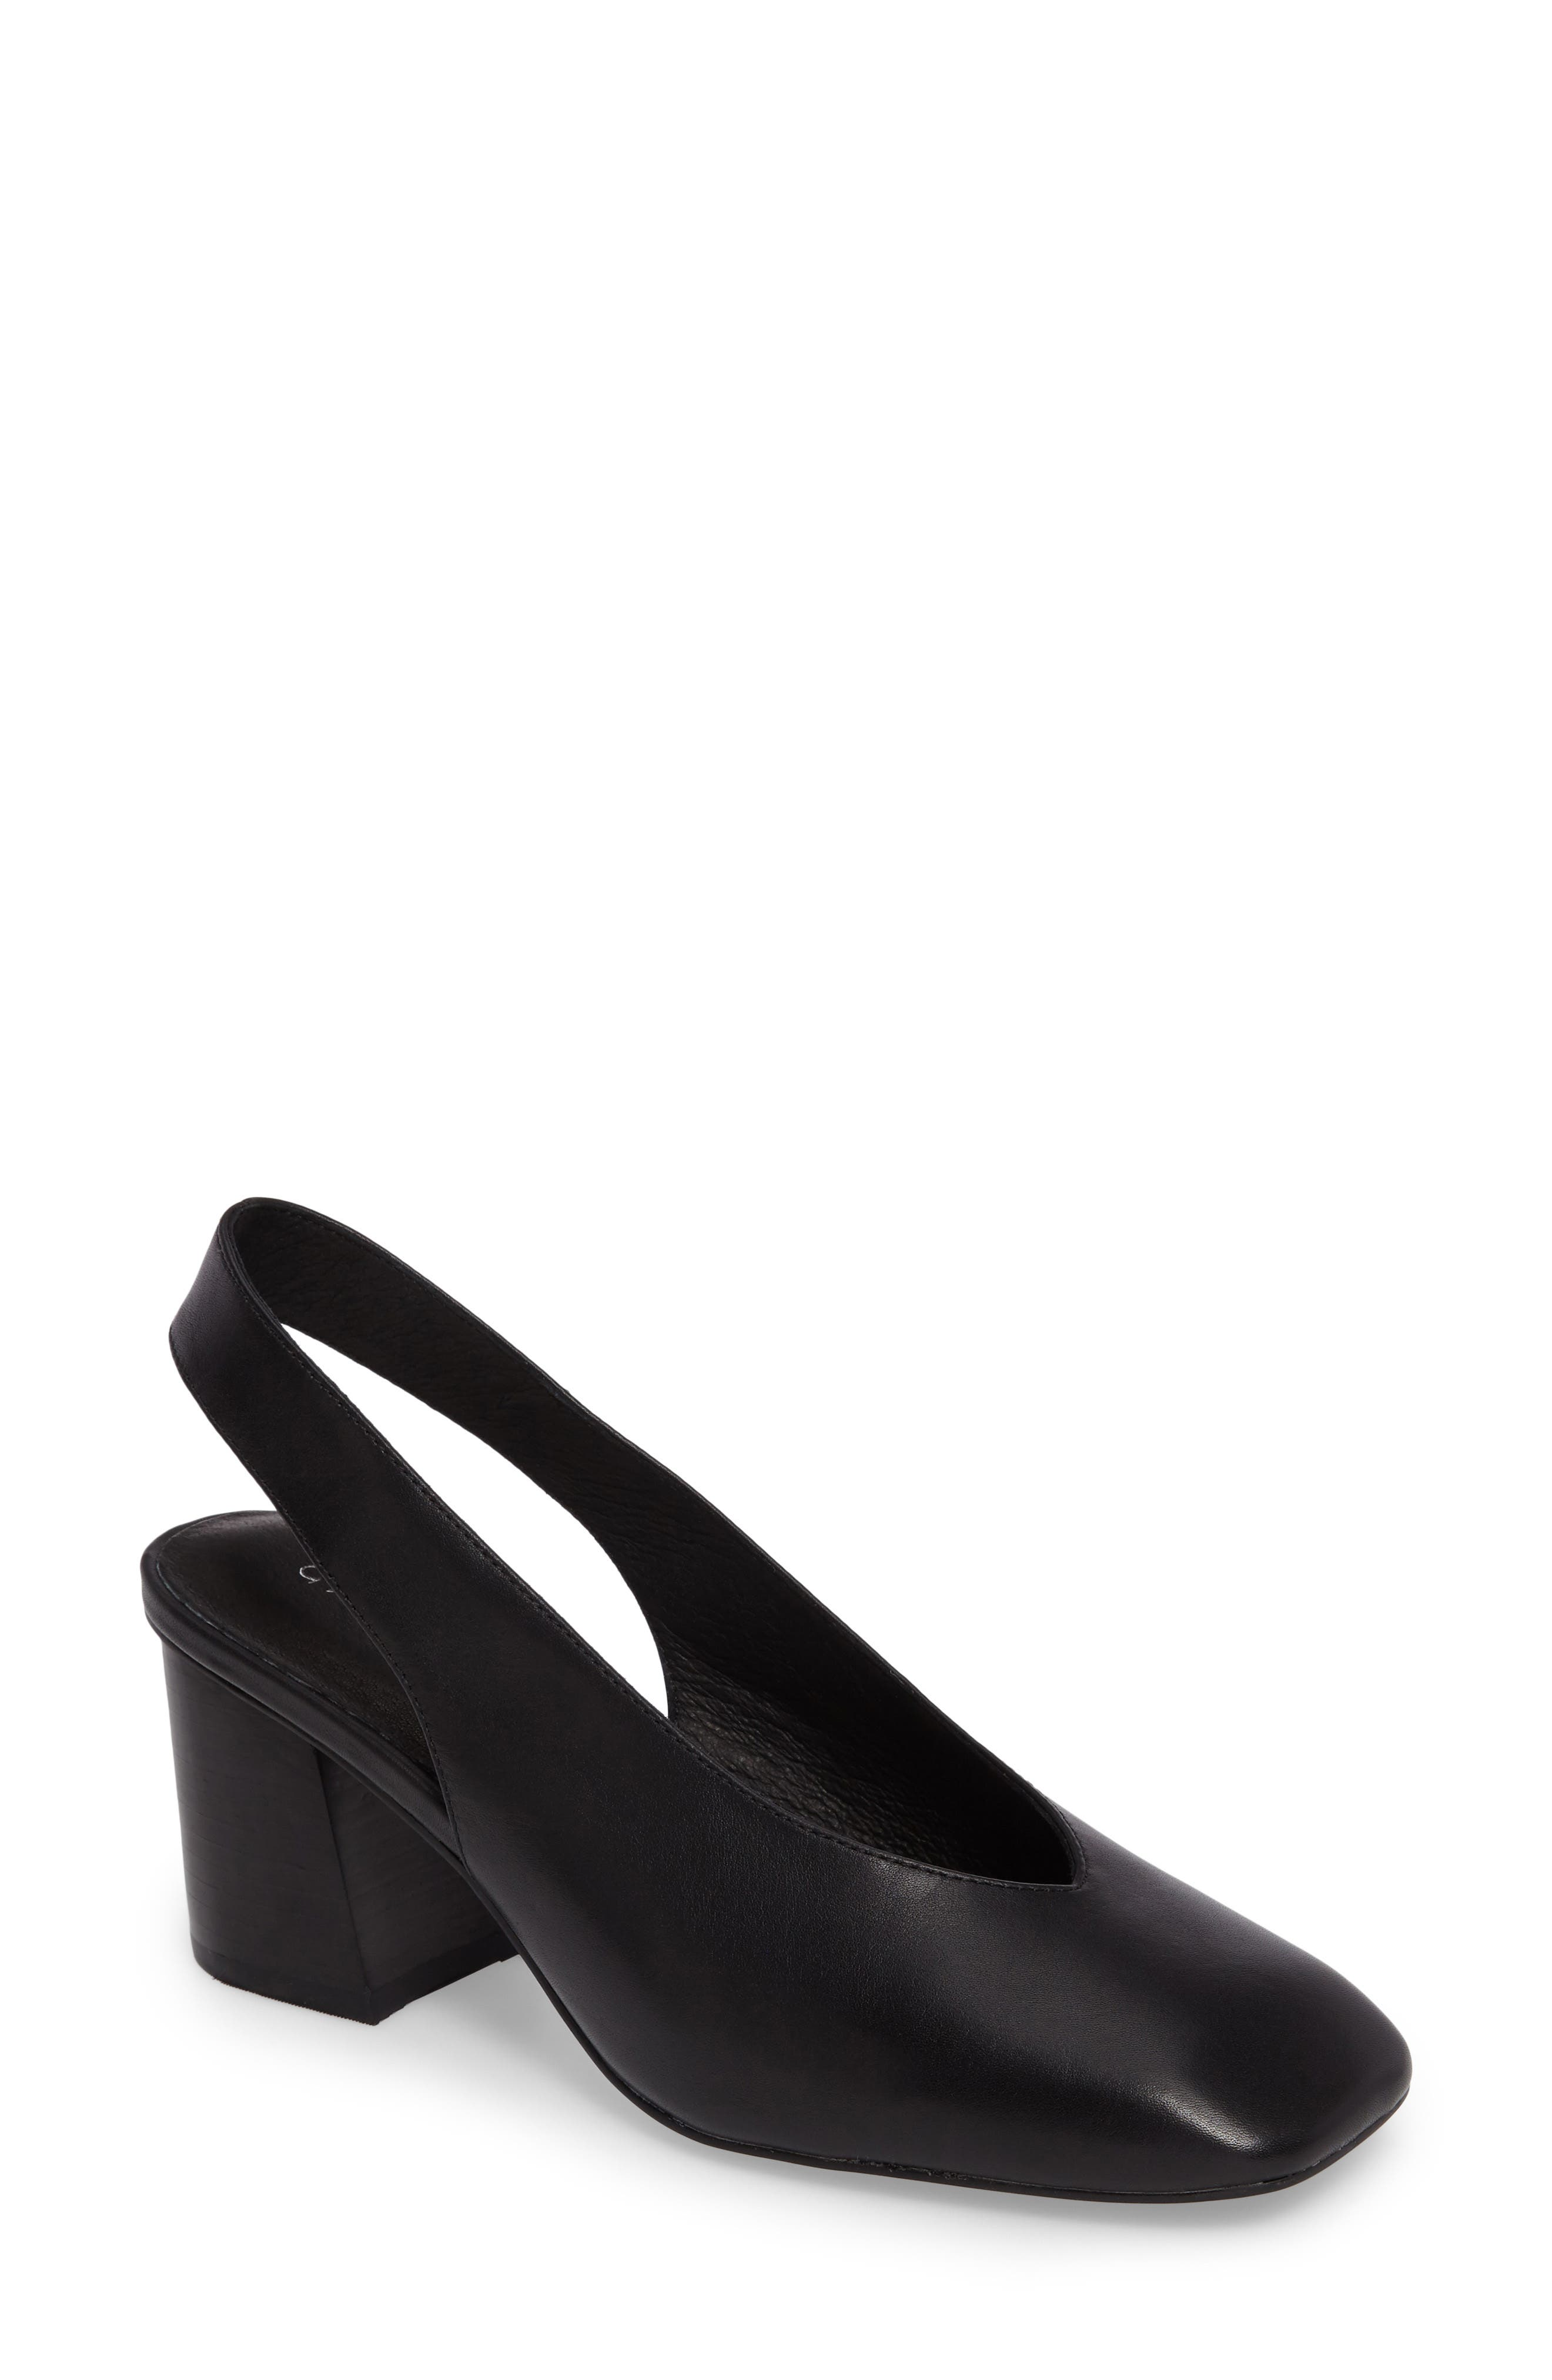 Sydney Square-Toe Slingback Pump,                             Main thumbnail 1, color,                             Black